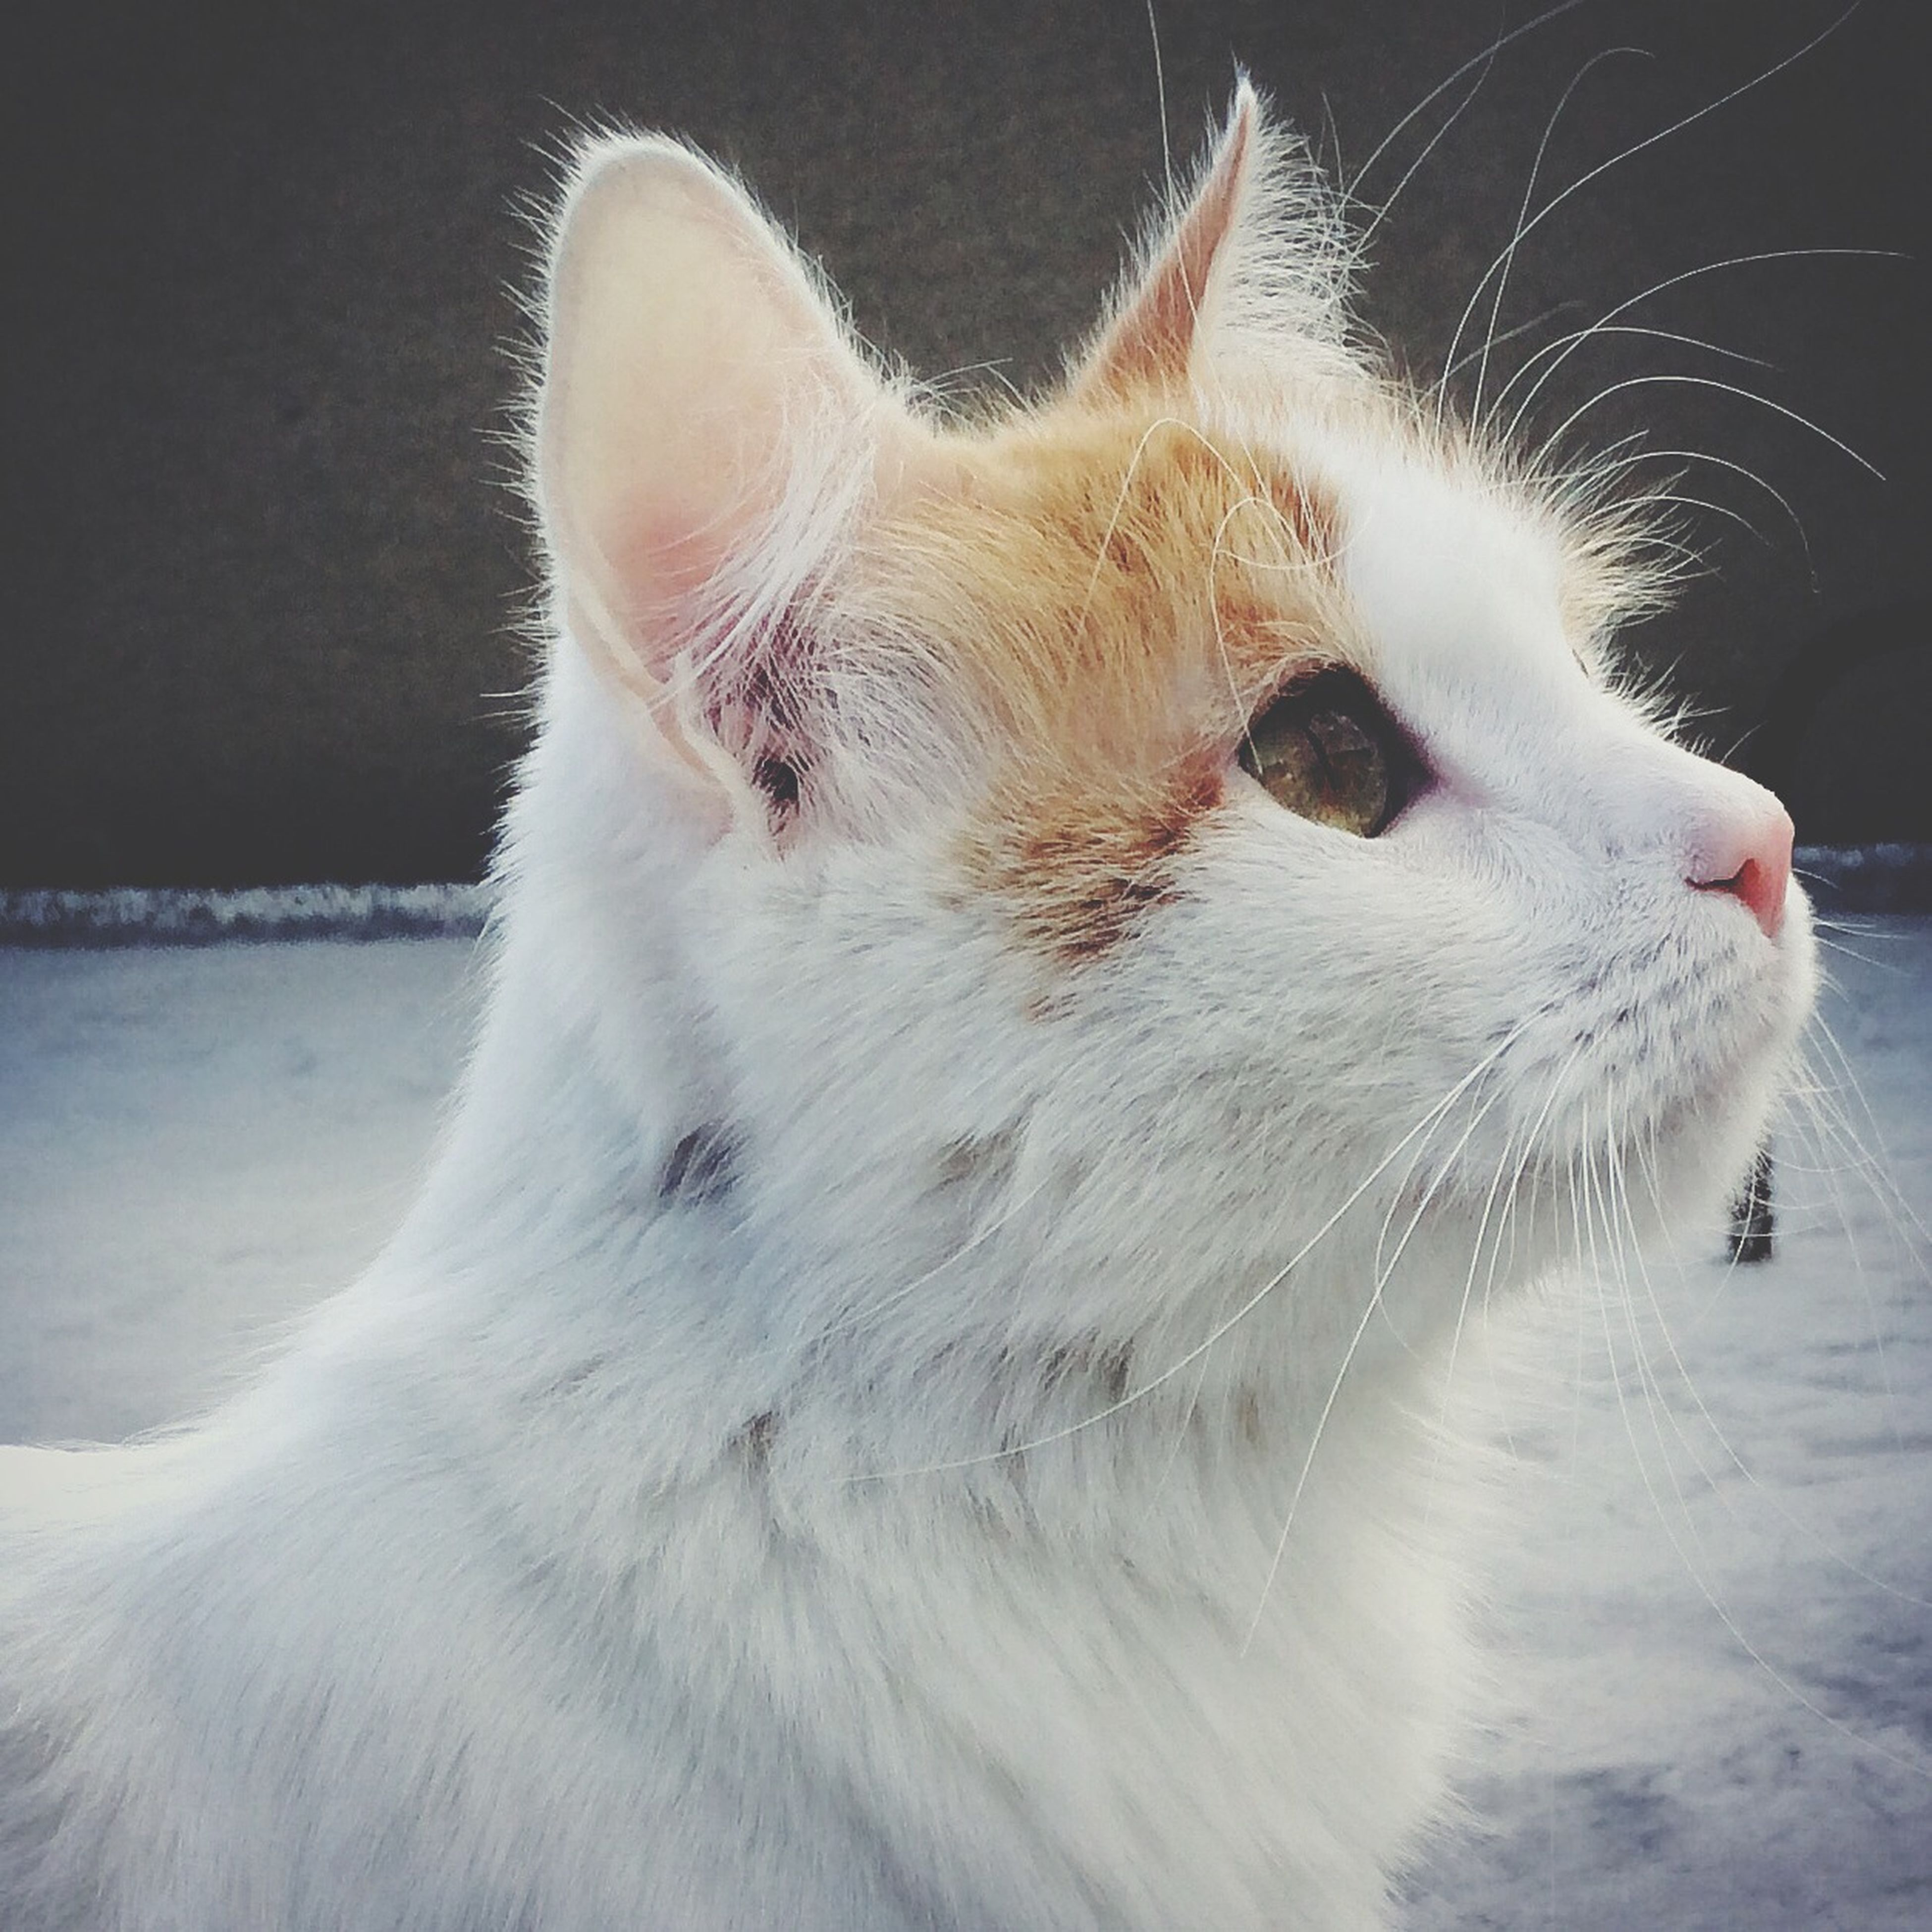 one animal, animal themes, domestic animals, pets, mammal, domestic cat, cat, feline, whisker, animal head, close-up, animal body part, looking away, white color, side view, focus on foreground, no people, animal hair, outdoors, dog